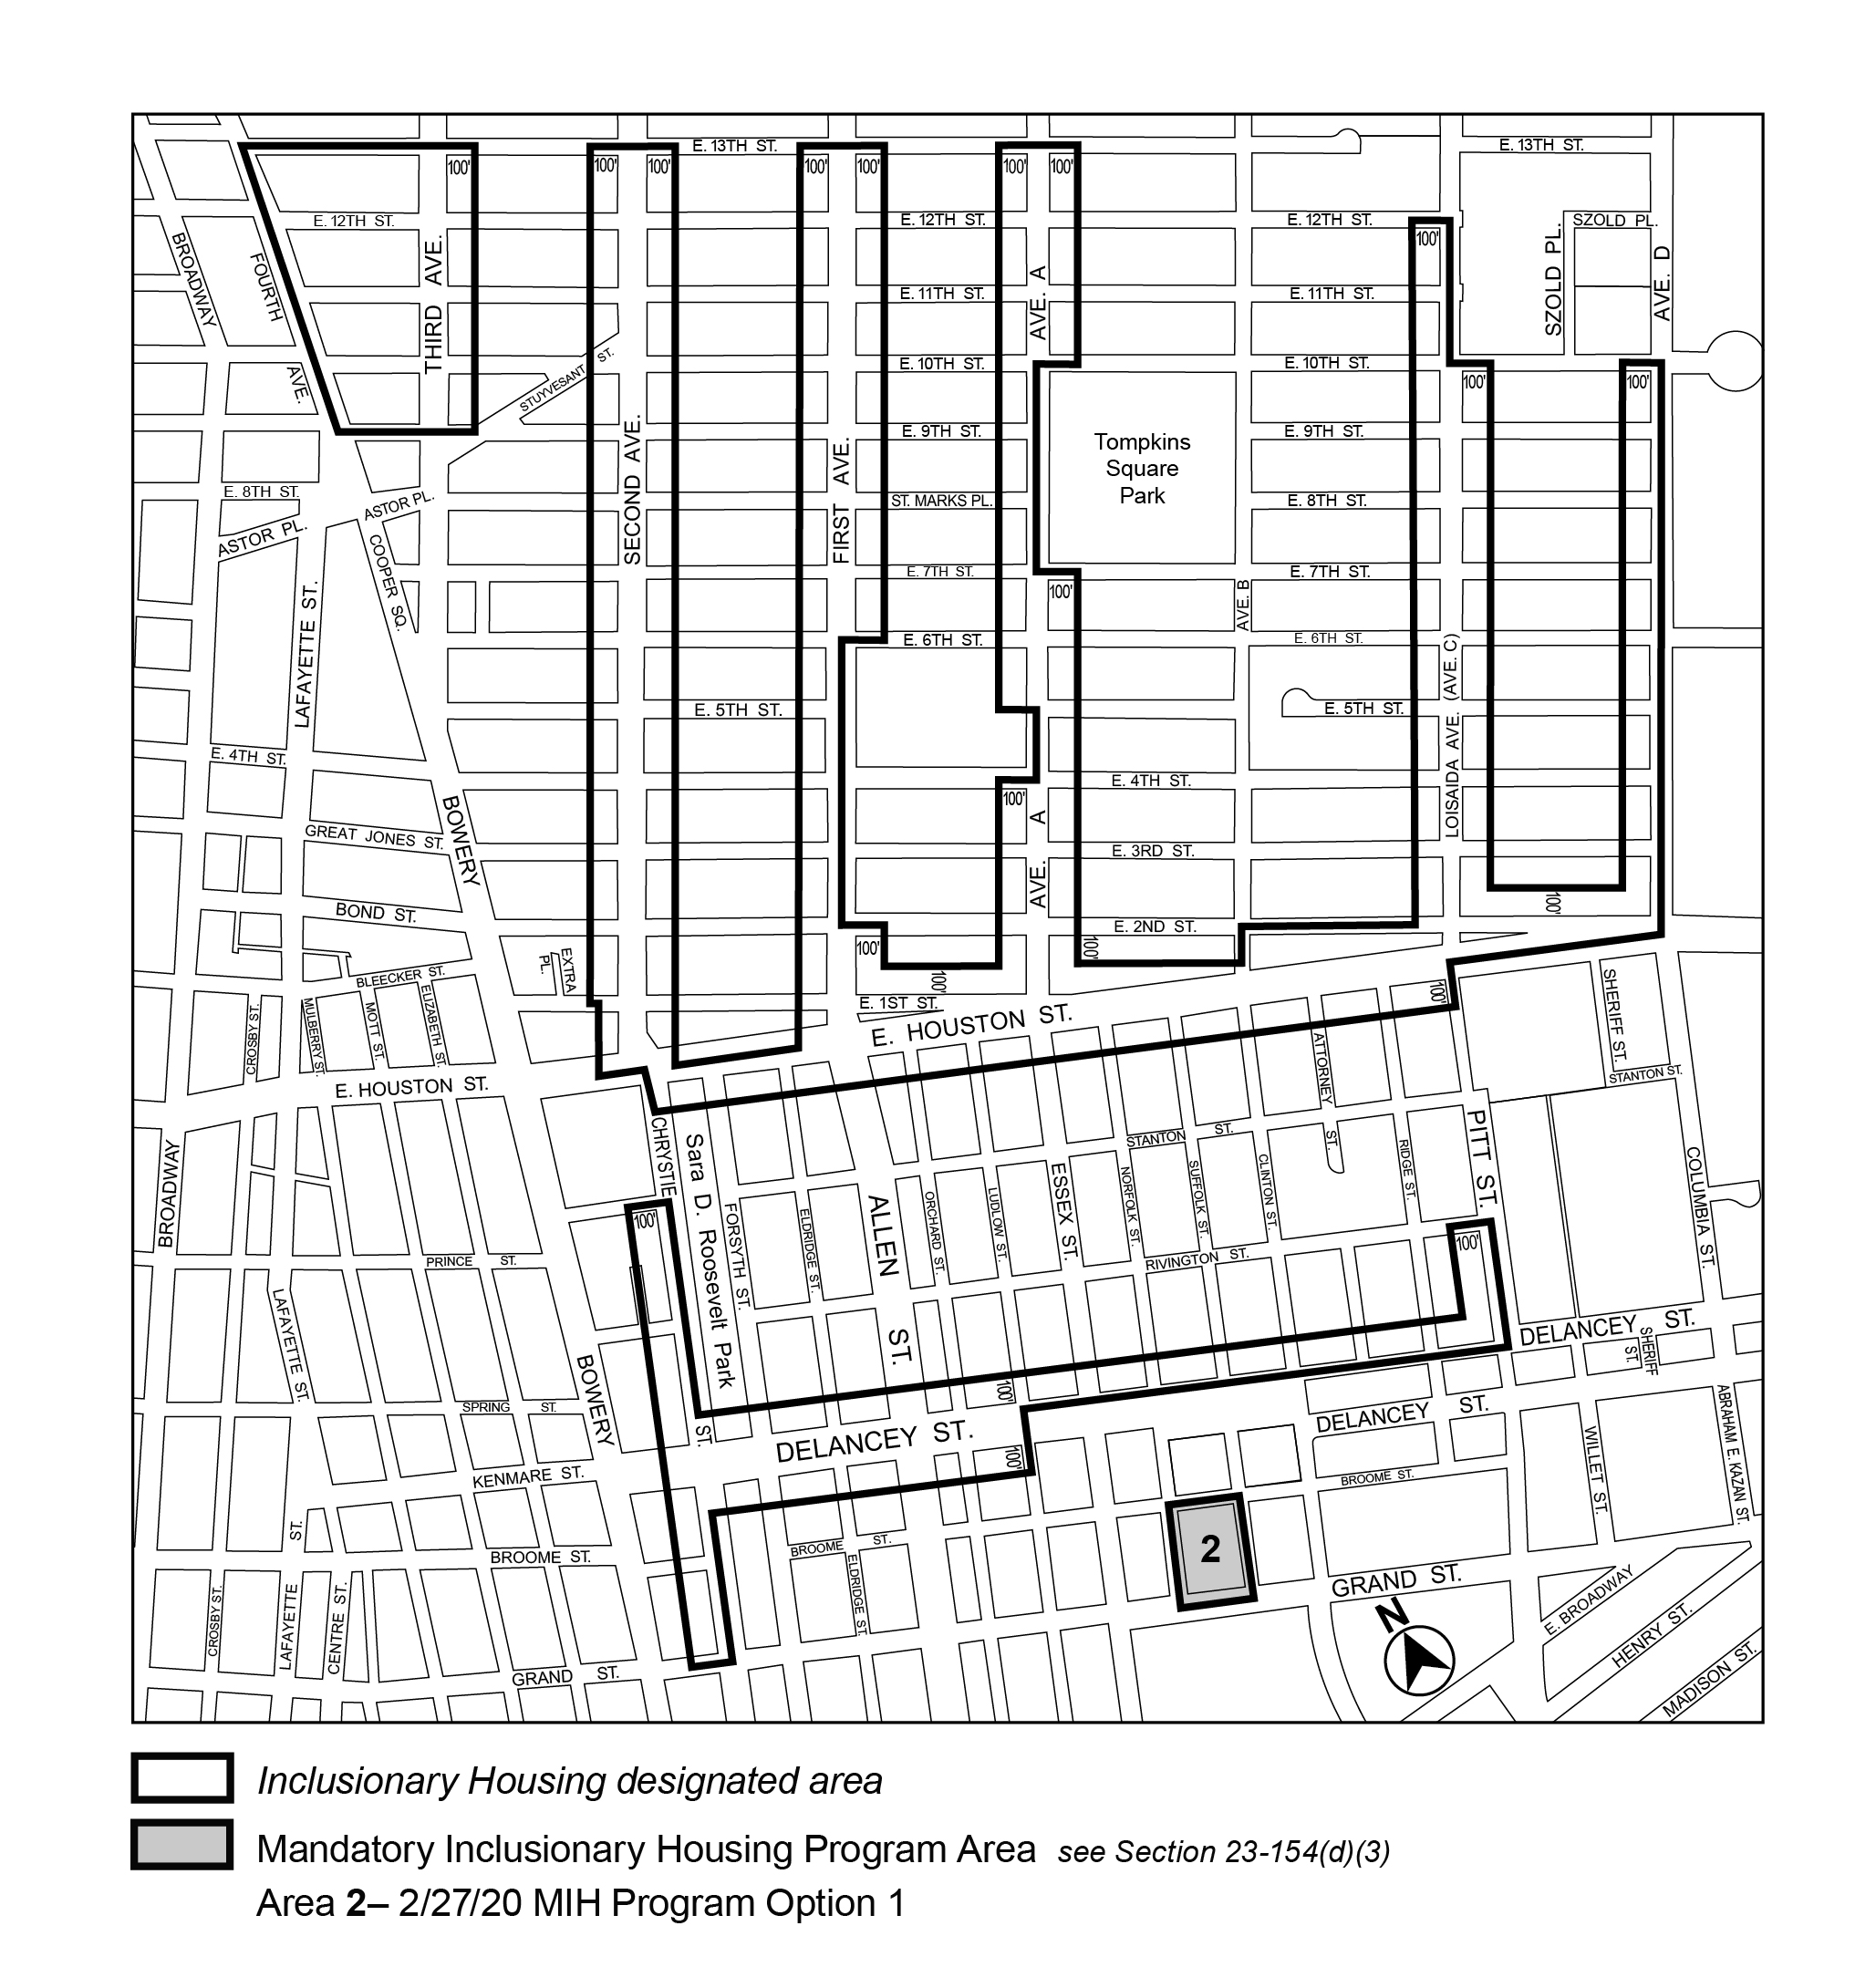 APPENDIX F Manhattan CD 3 Map 1 Area 2